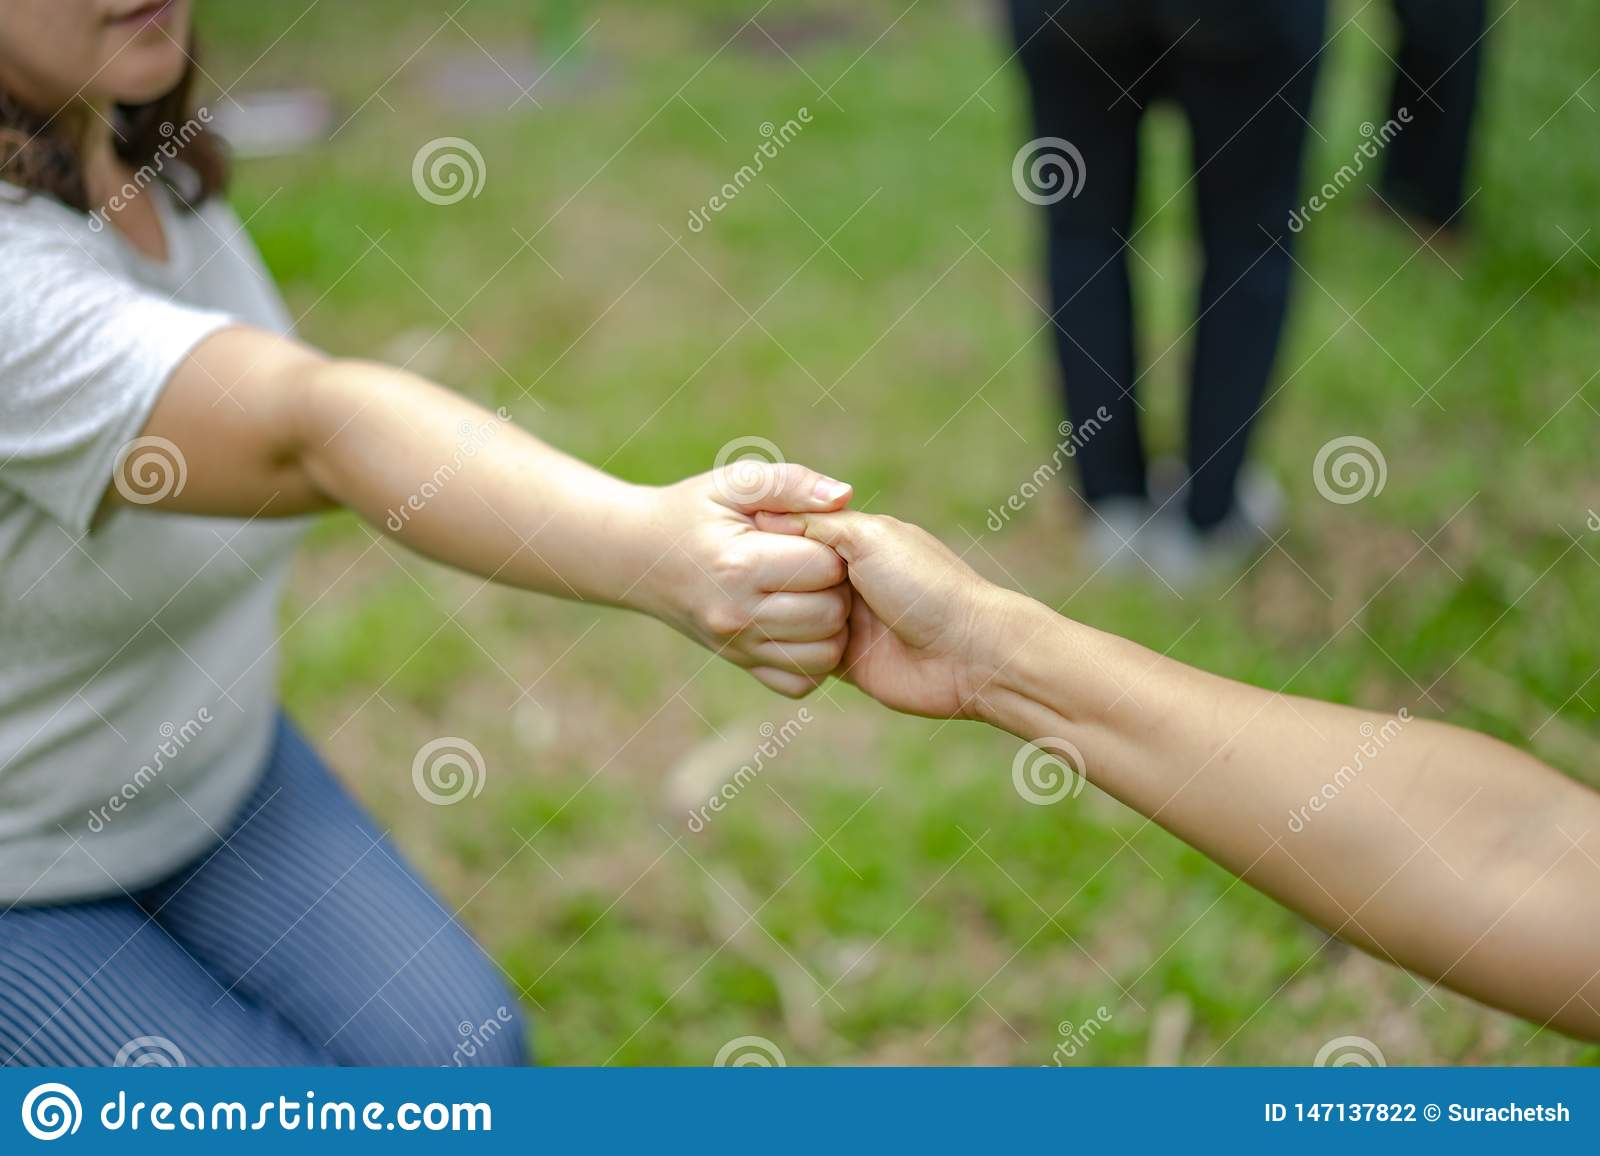 Hand holds together in the community in the garden / park